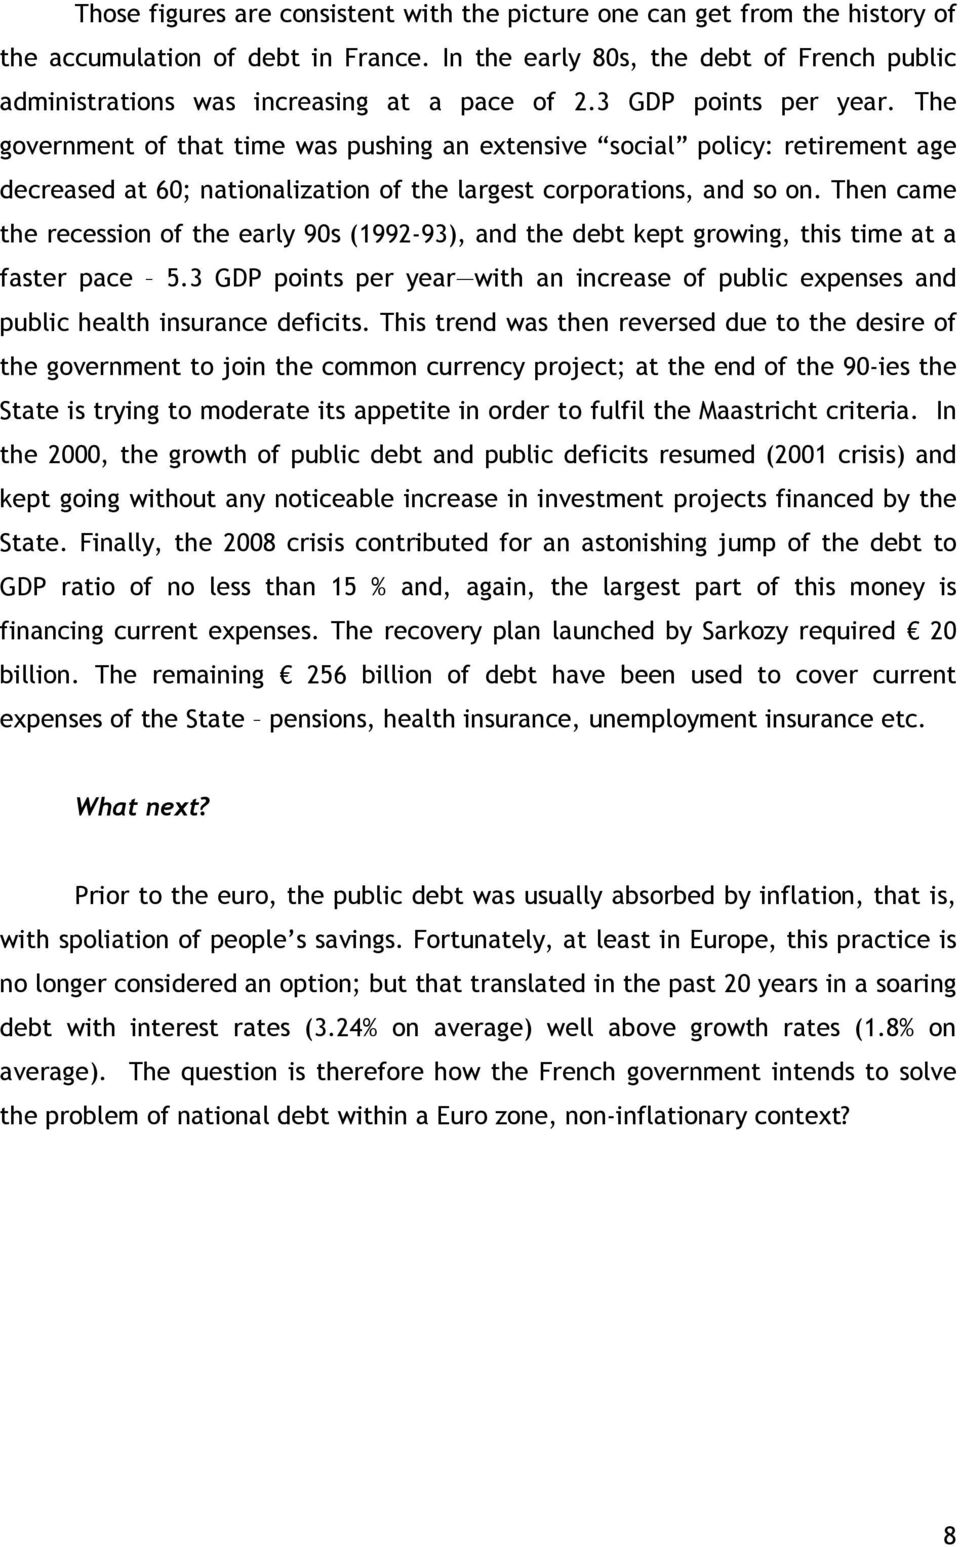 The government of that time was pushing an extensive social policy: retirement age decreased at 60; nationalization of the largest corporations, and so on.